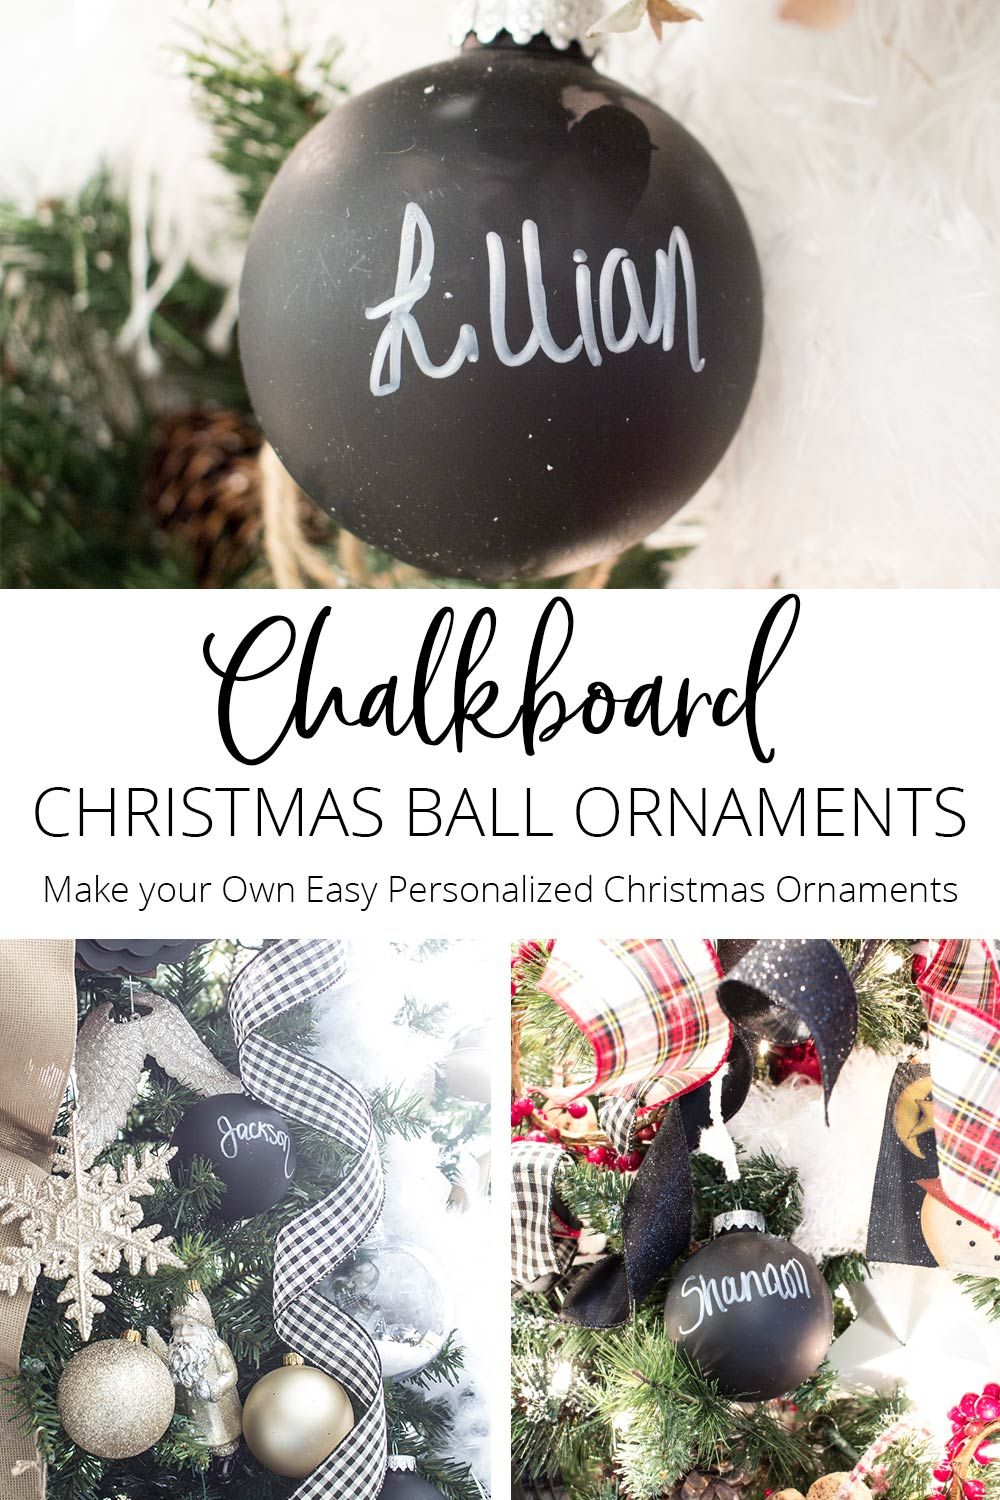 Uncategorized Make Personalized Christmas Ornaments chalkboard christmas ball ornaments easy personalized ornaments